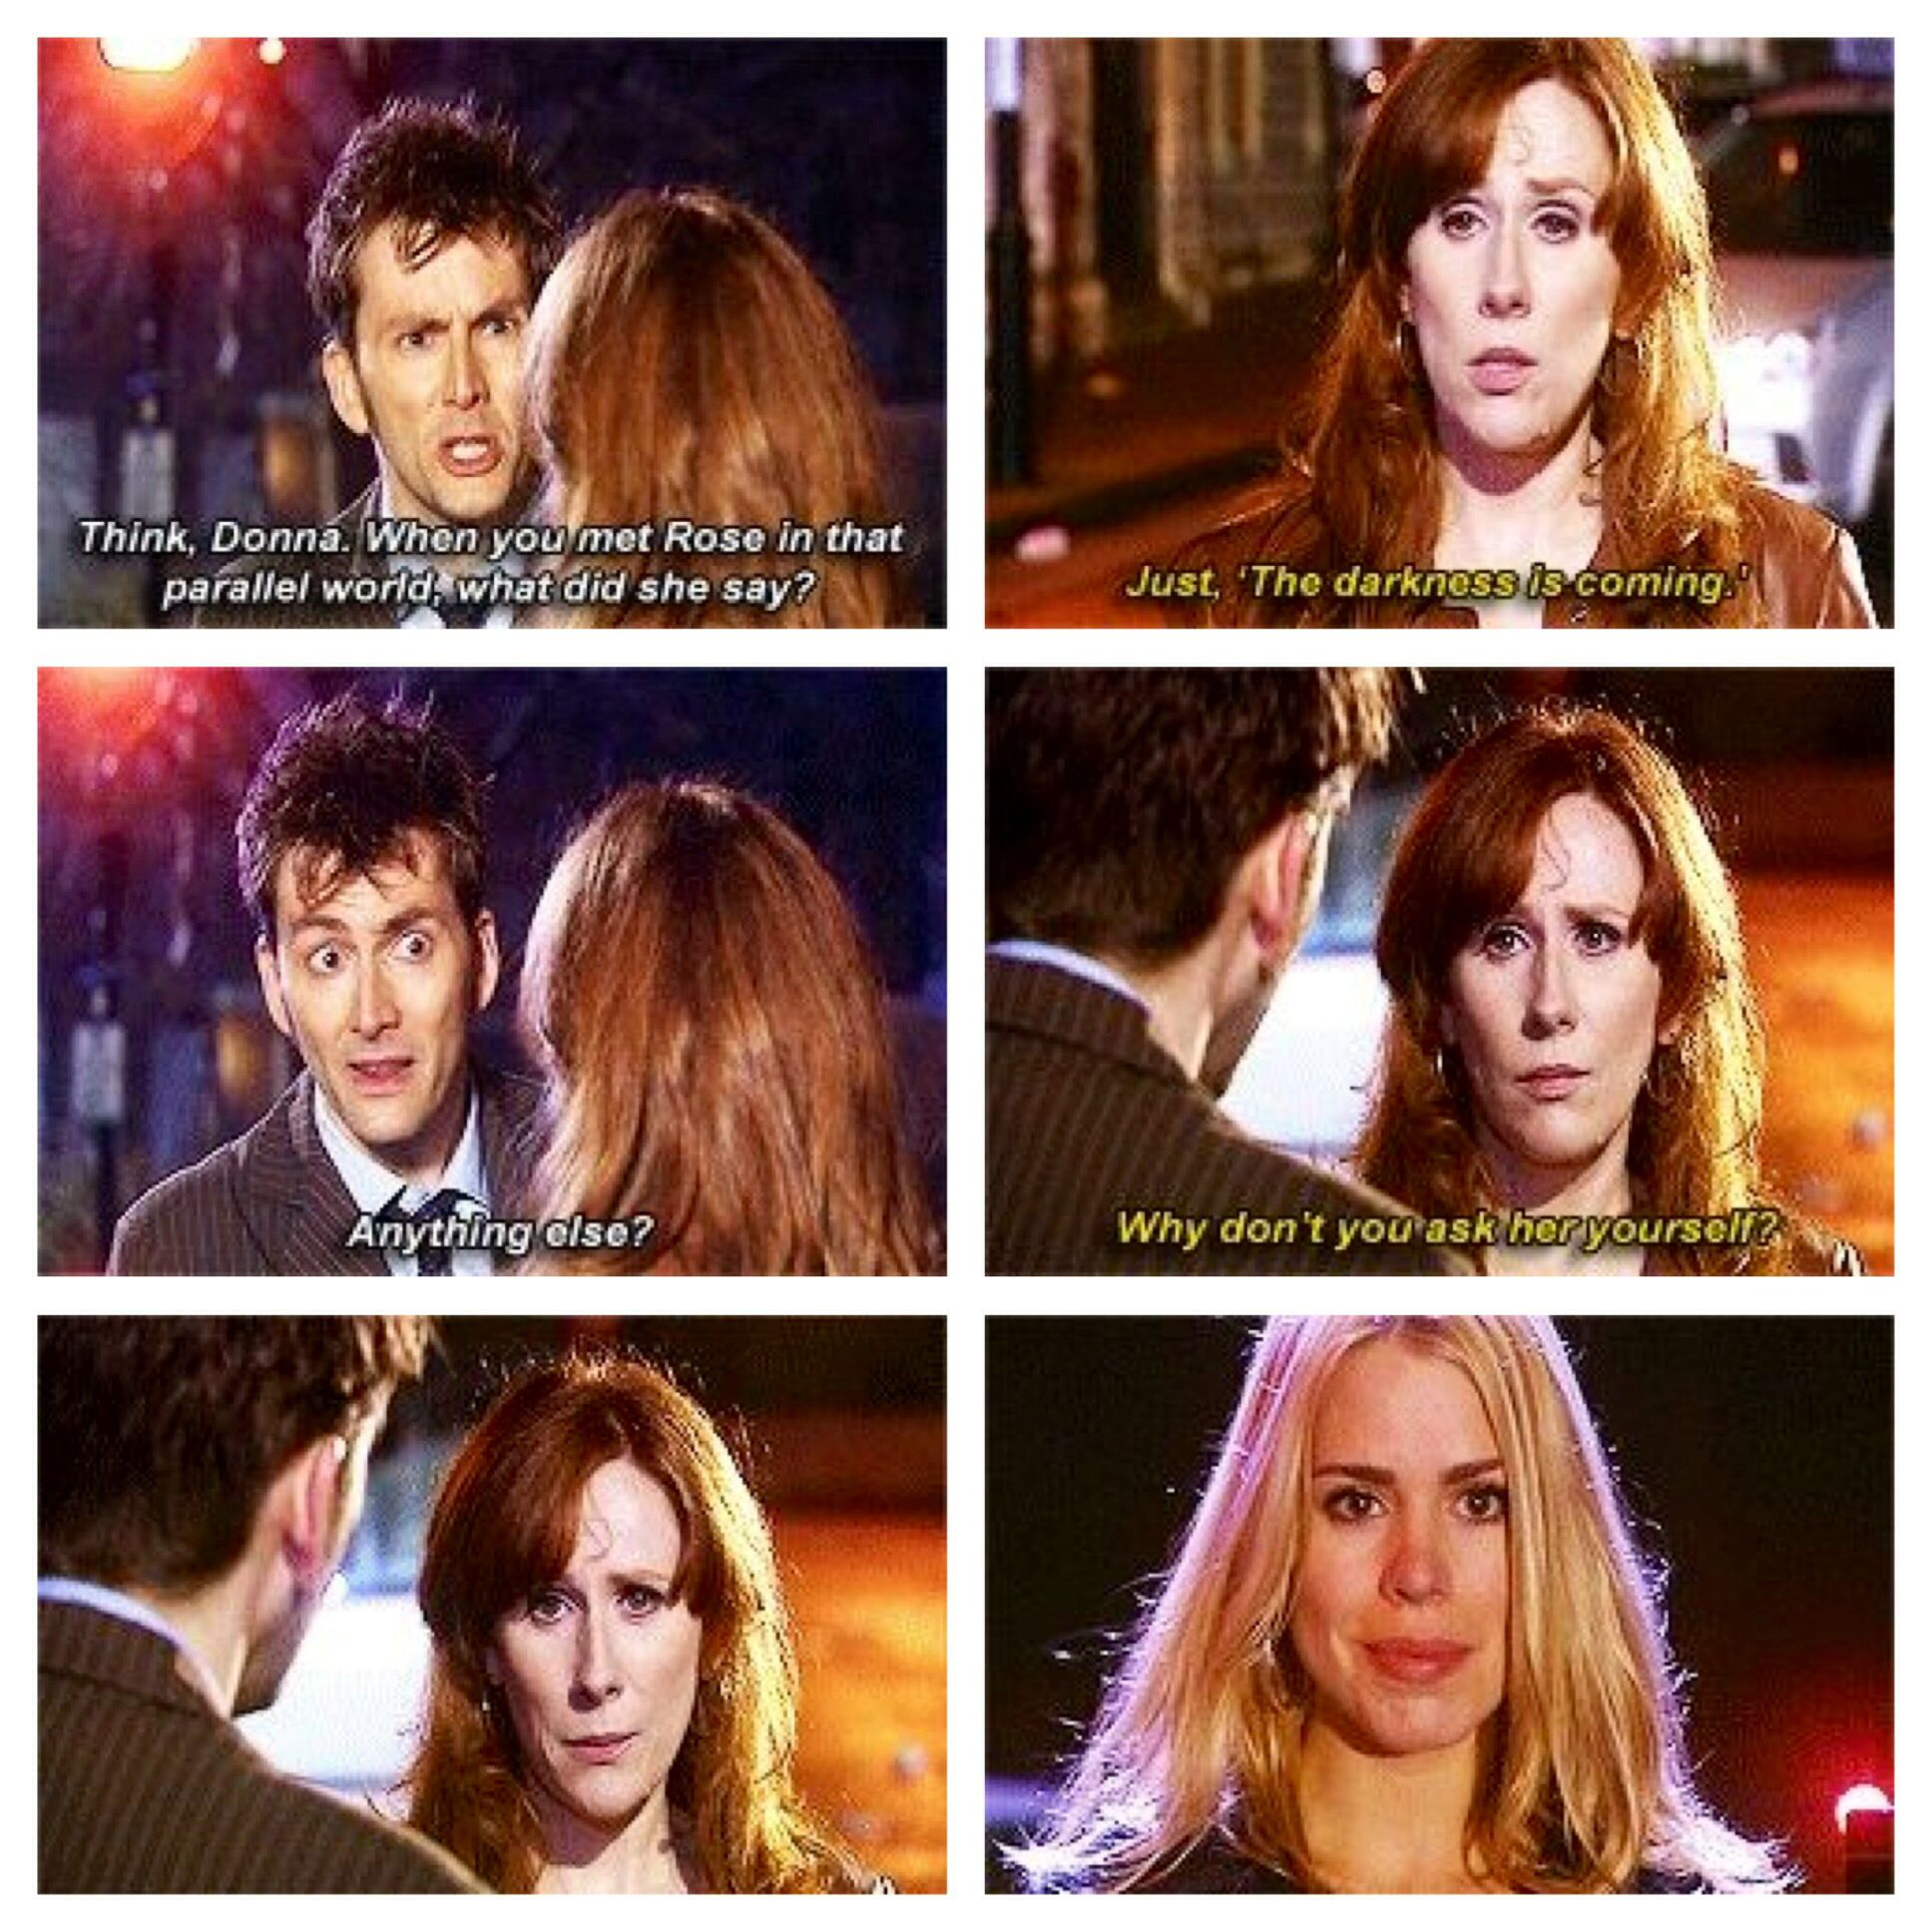 Doctor Who - Ten and Rose - Ask her yourself.